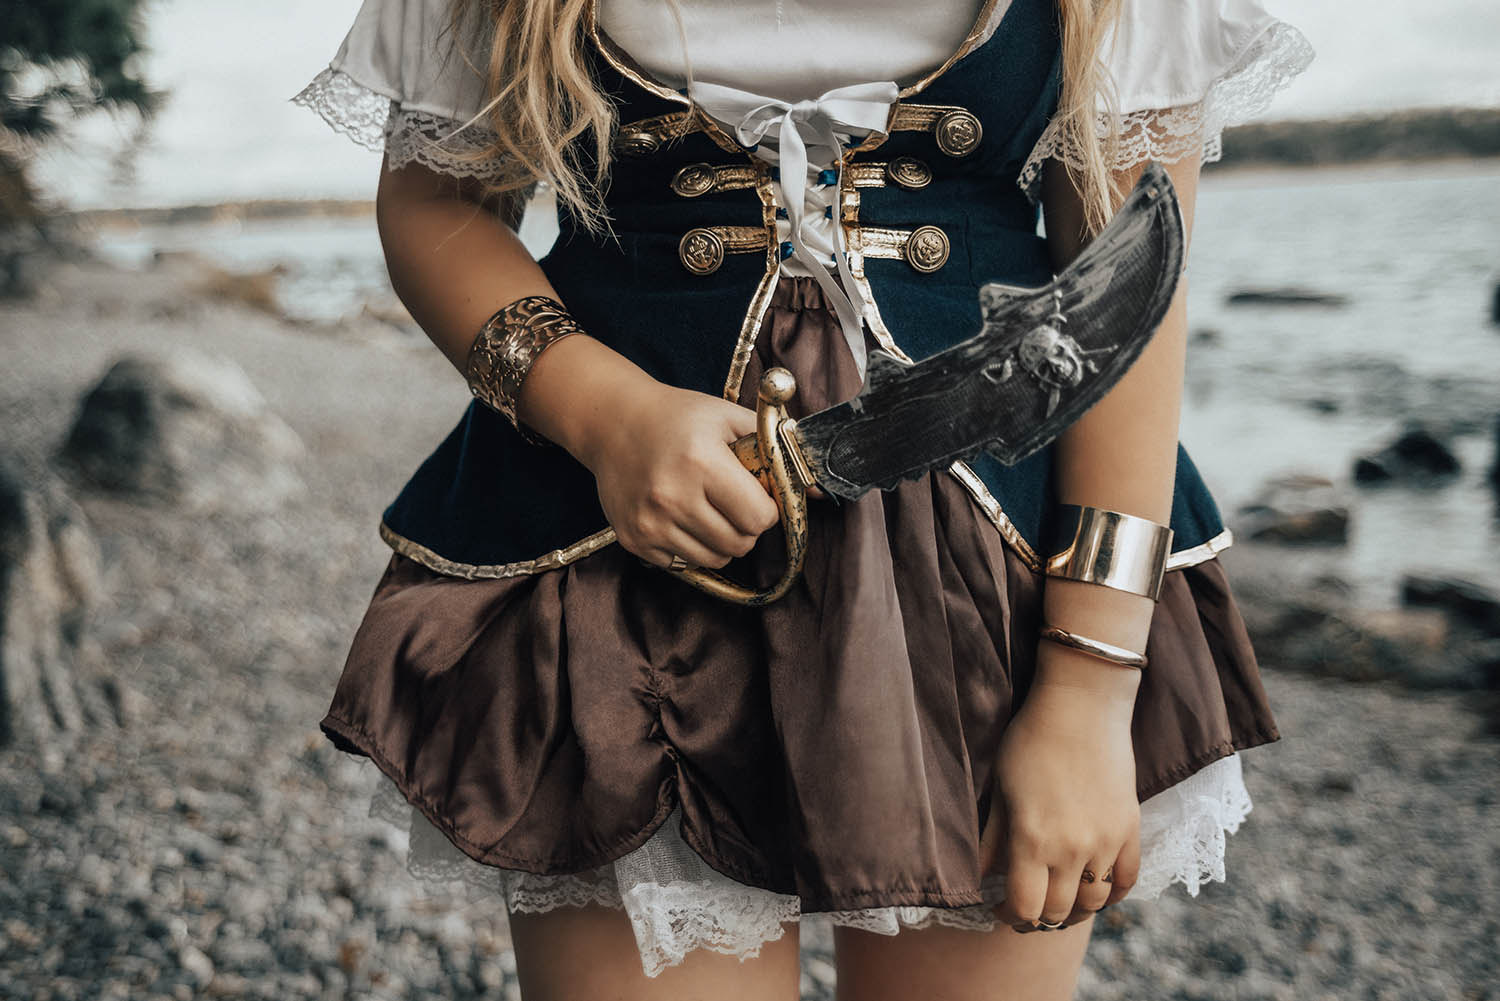 Halloween - Details of Wench Pirate Costume & Pirate Knife